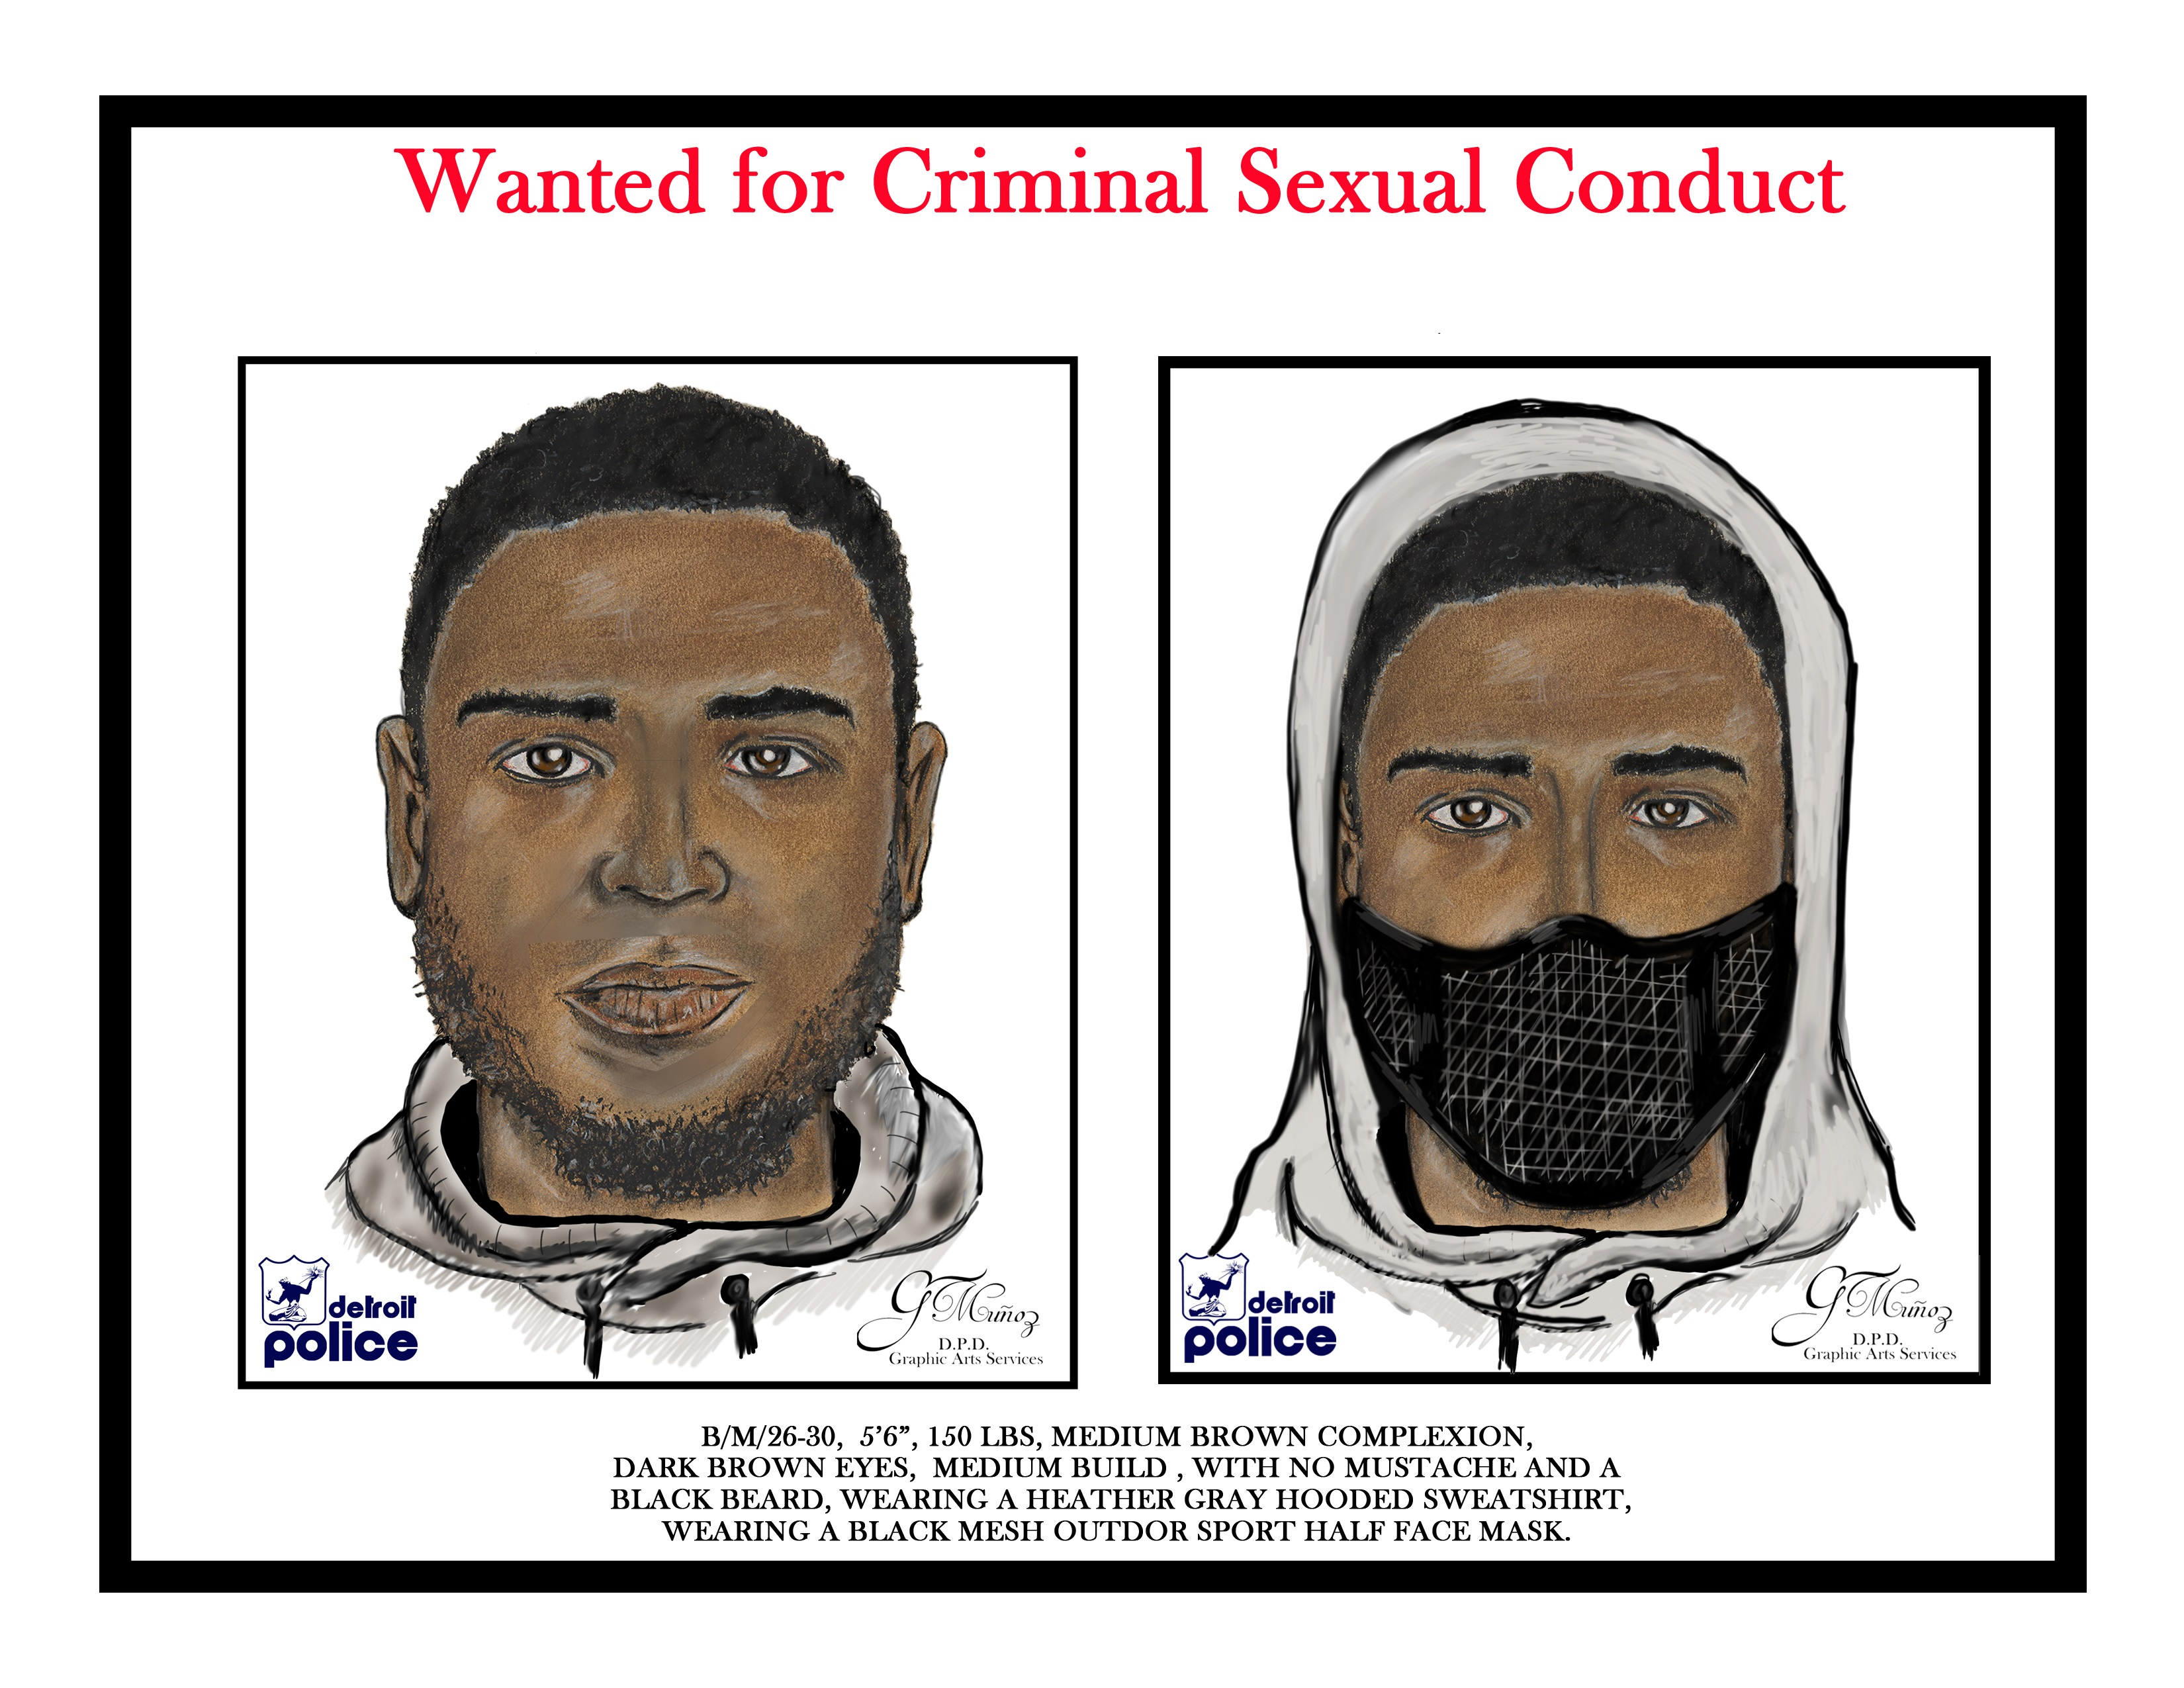 Tips Wanted To ID Suspect In Series Of Sexual Assaults [SKETCH